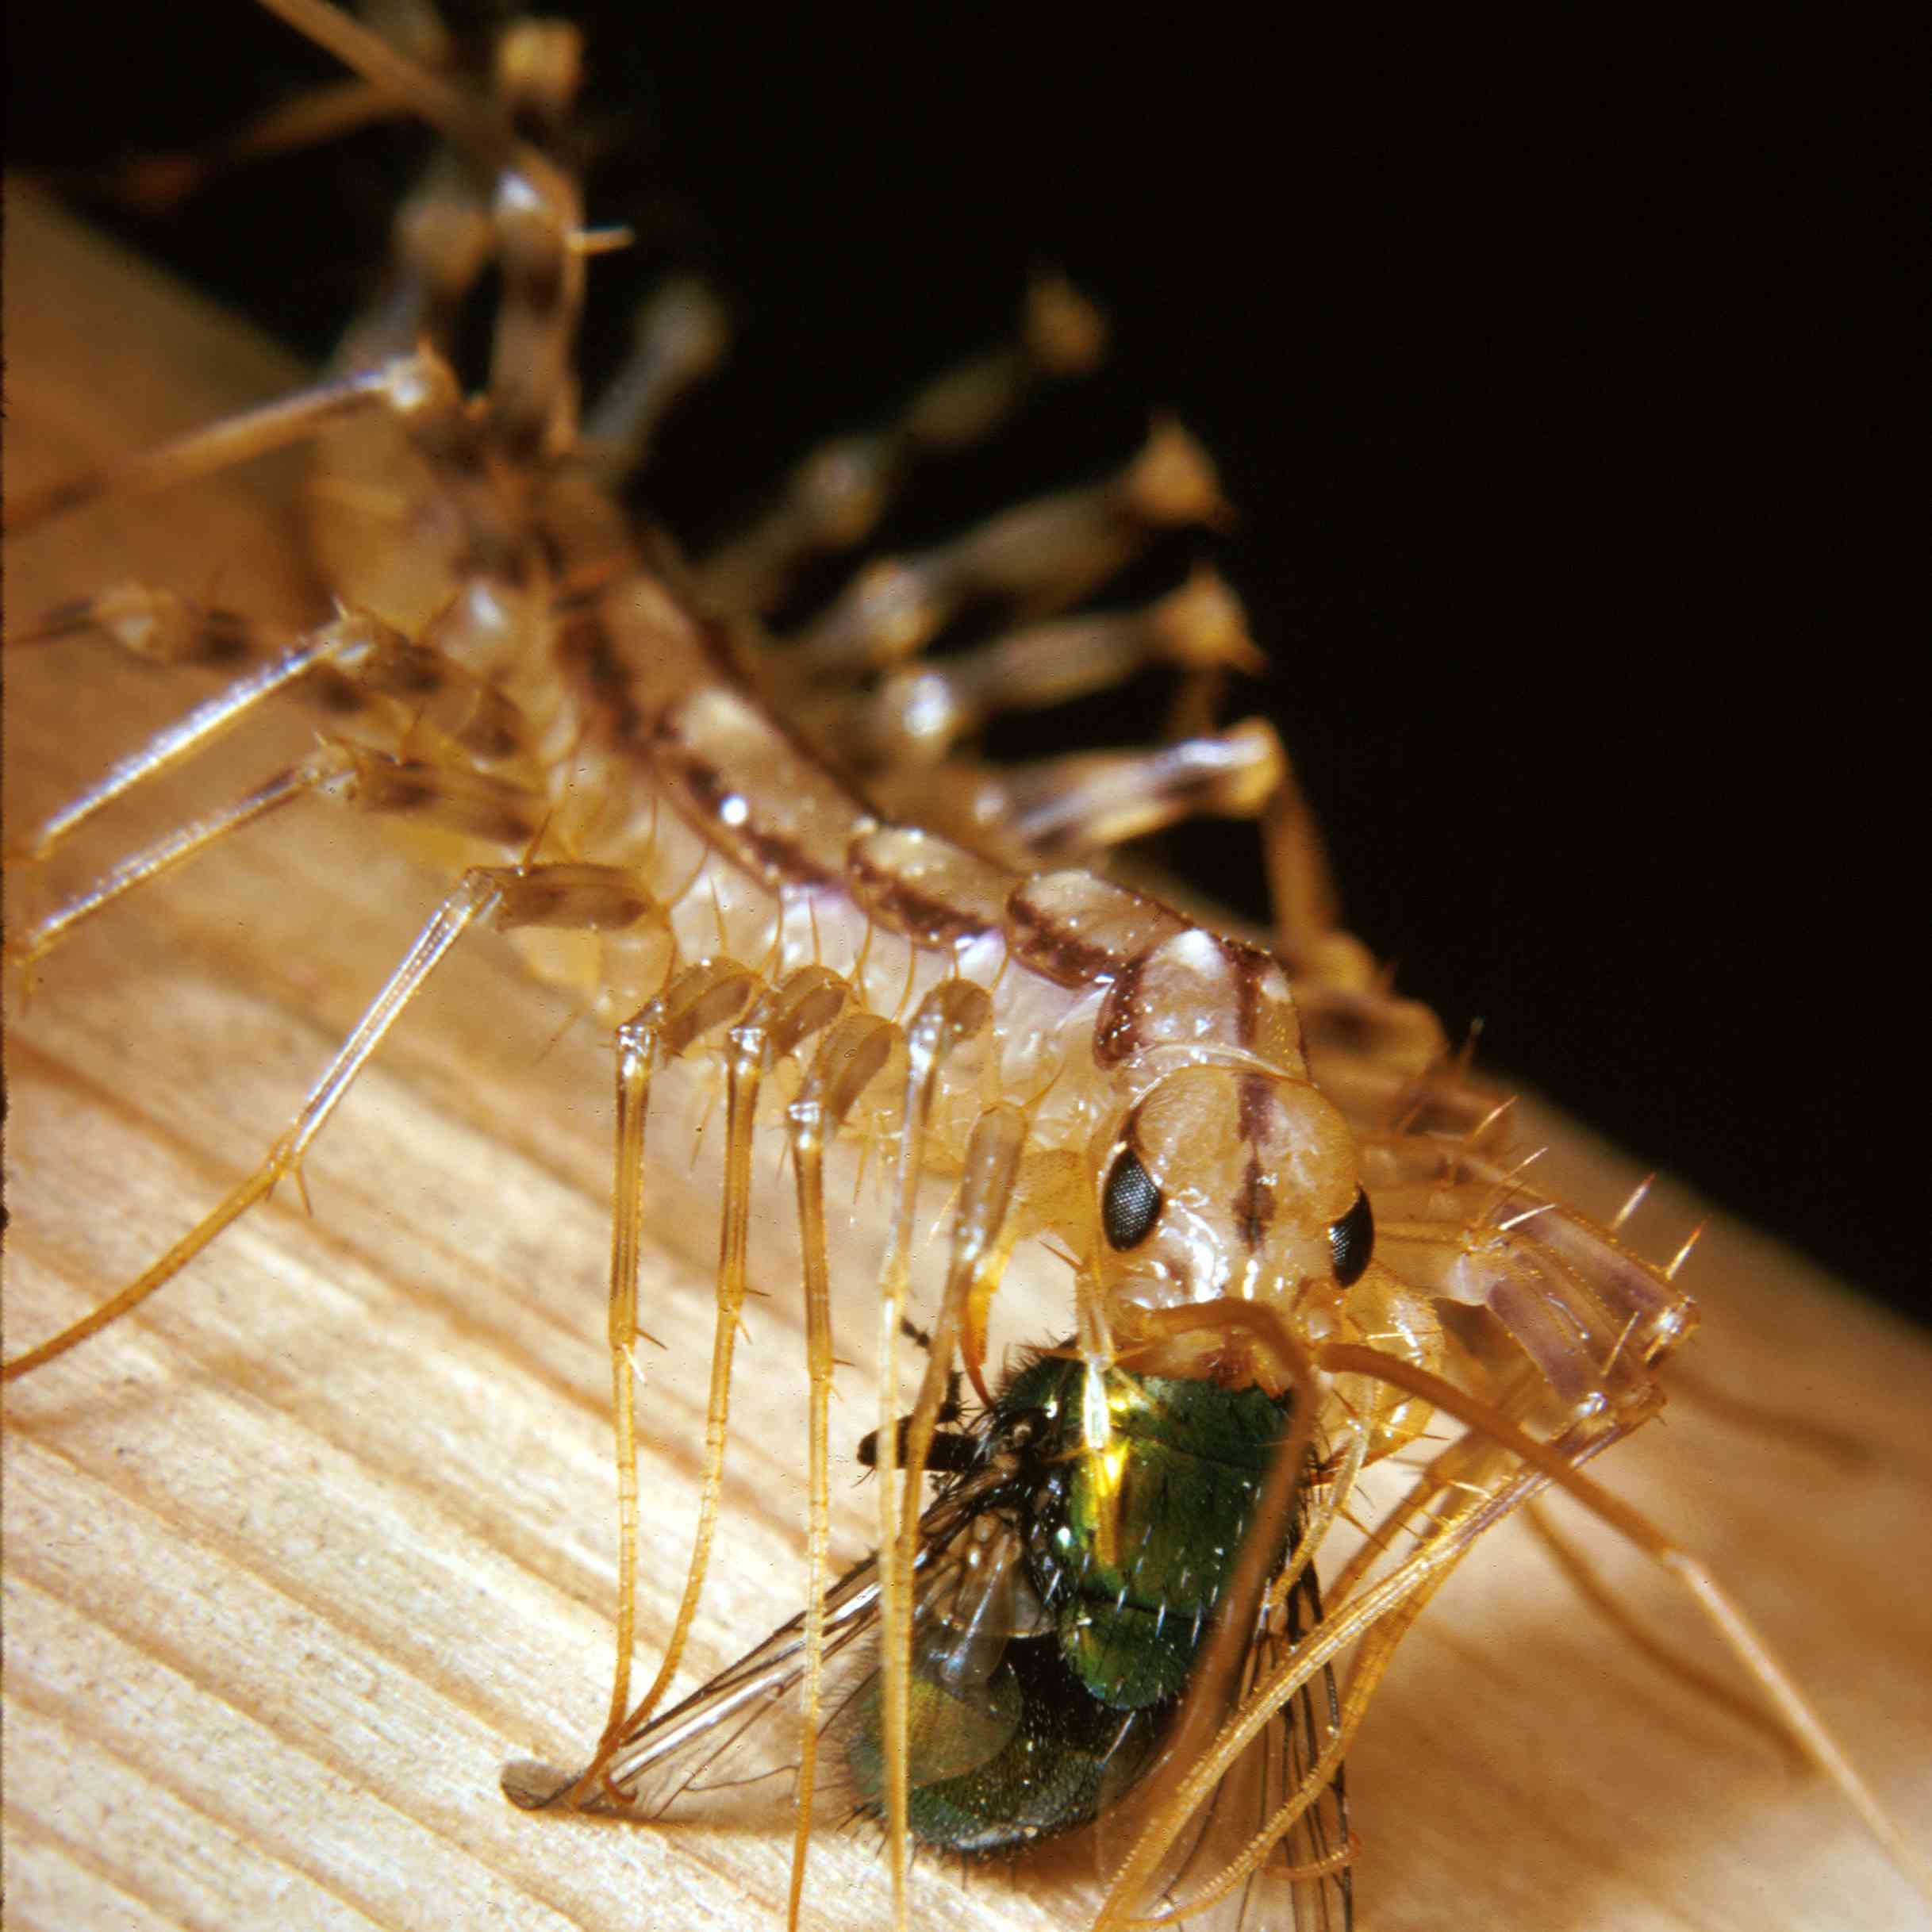 house centipede eating a fly